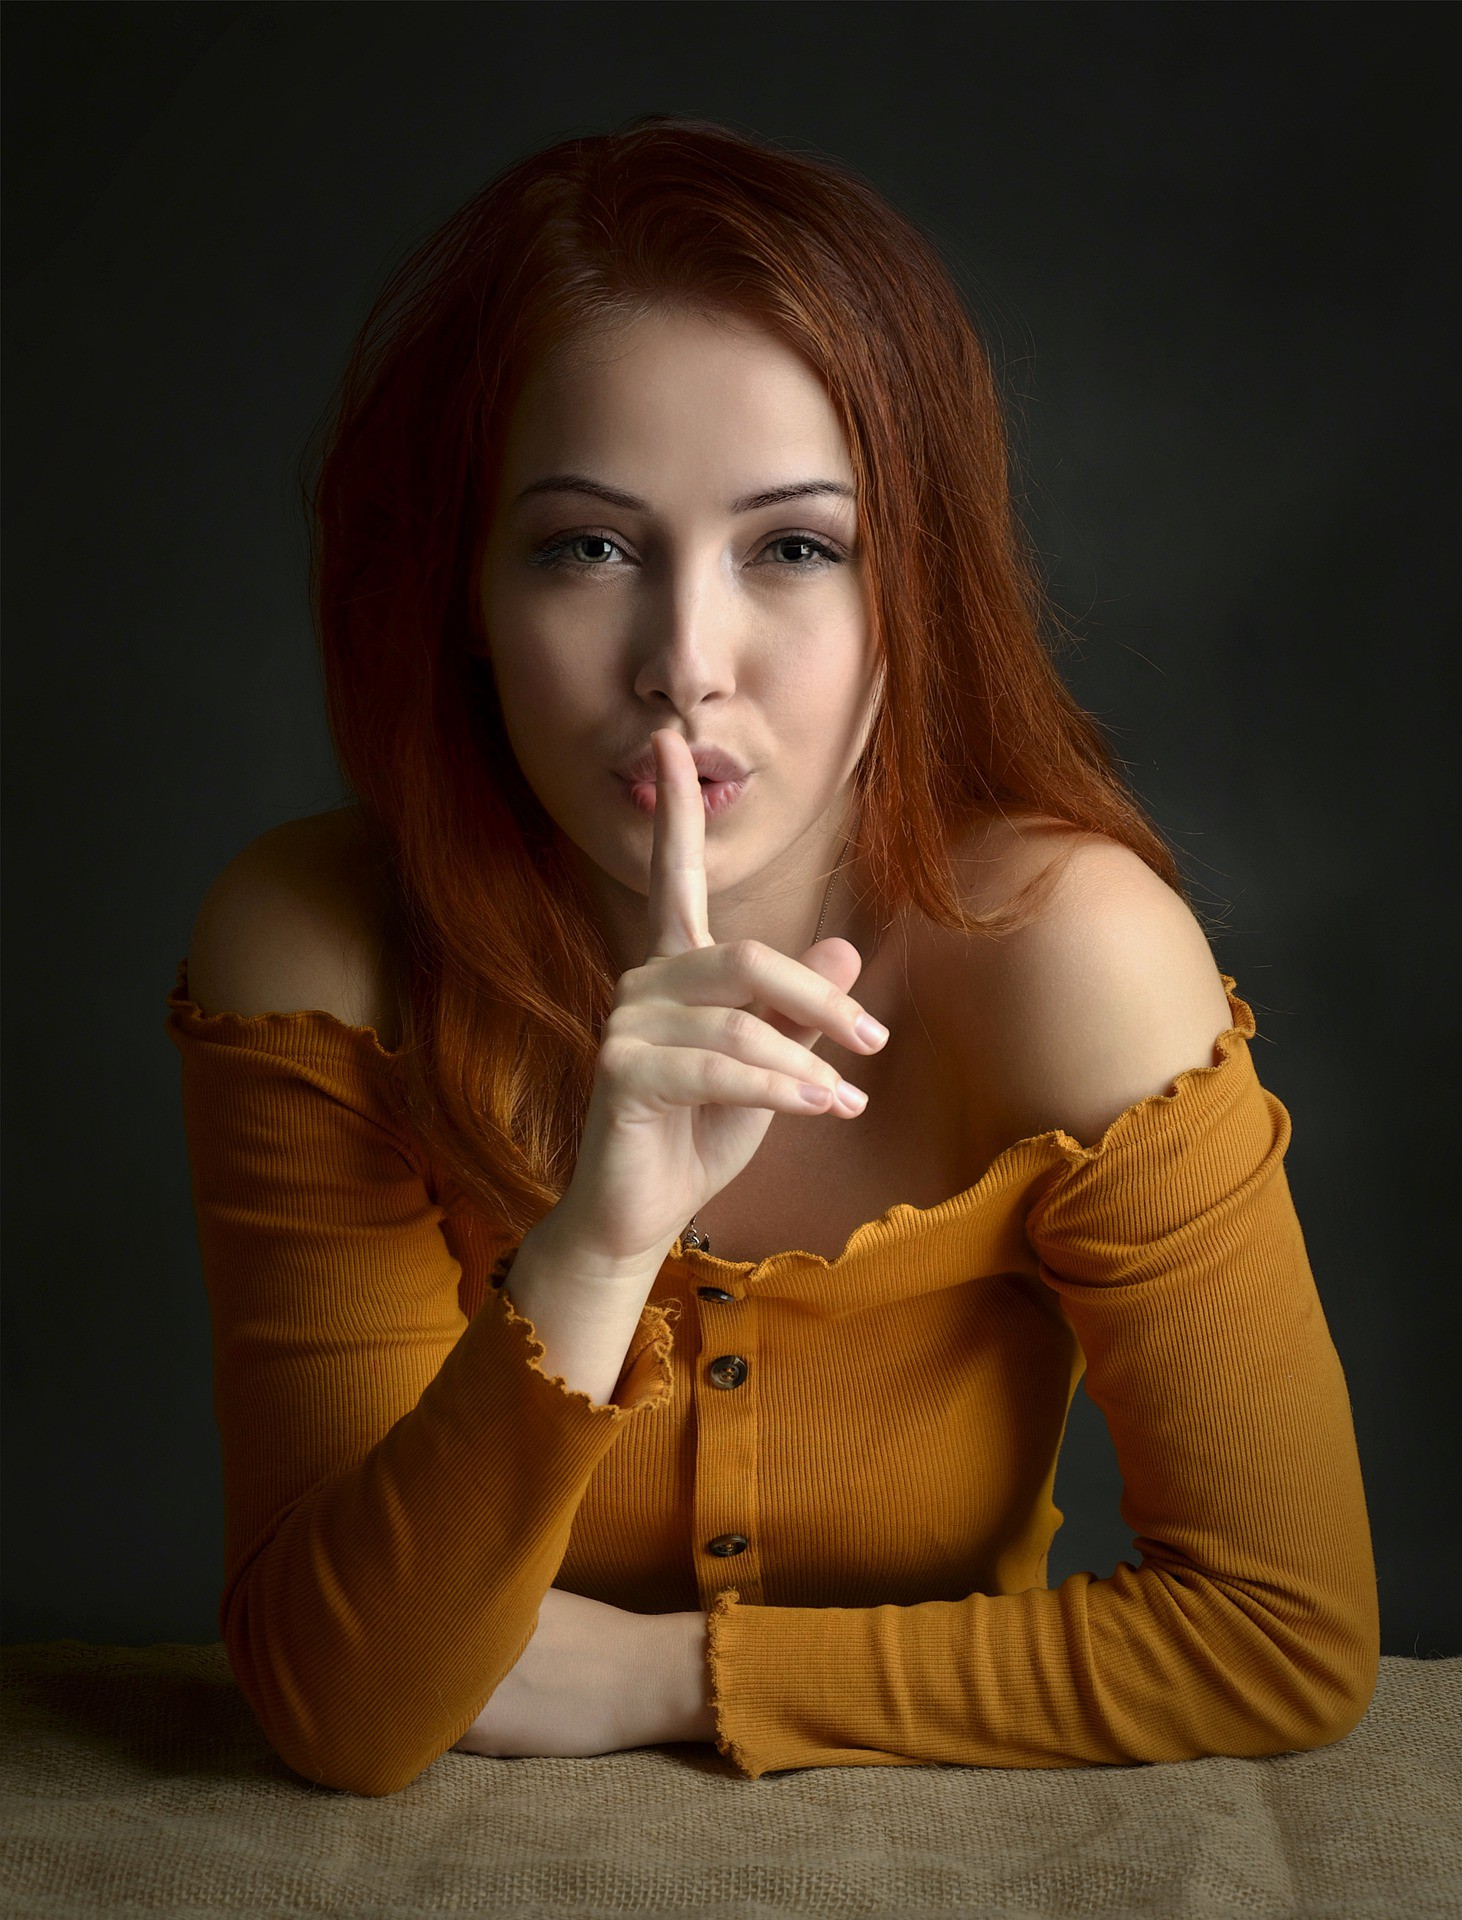 Image of a woman with finger to the lips, indicating silence.